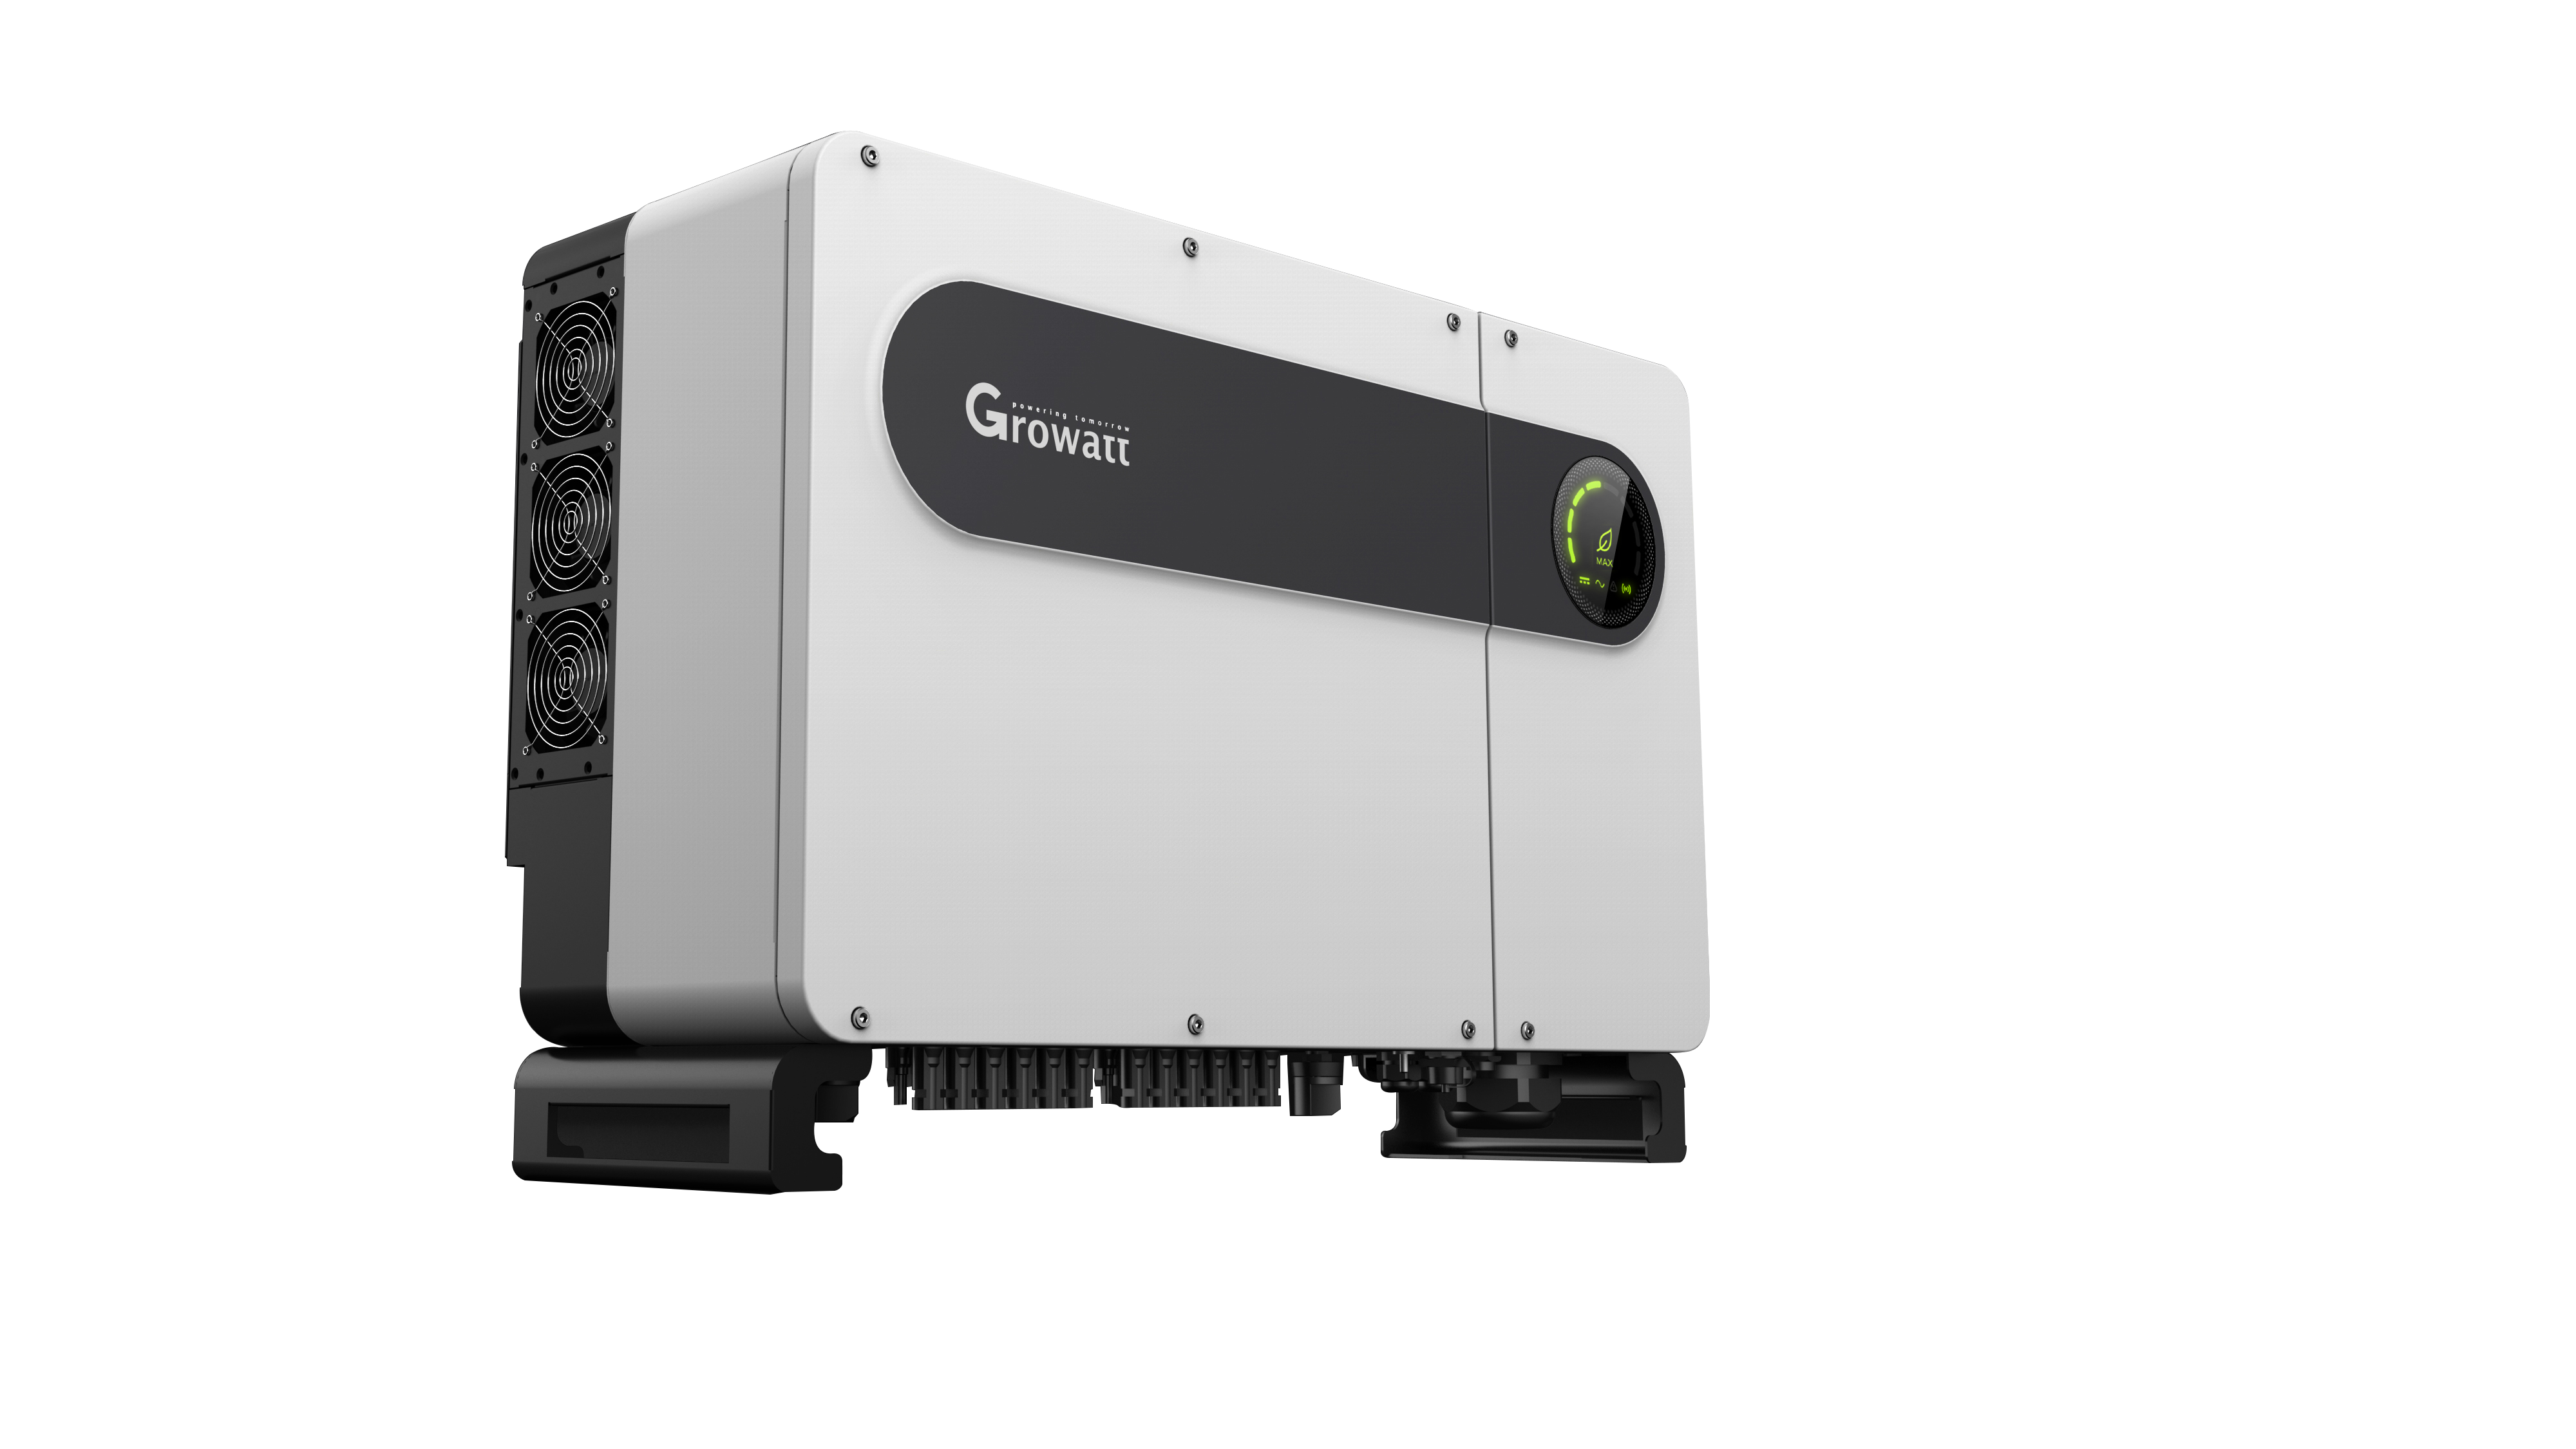 Growatt has introduced the MAX 50-80KTL3-LV/MV series string inverters that are equipped with 6 MPPTs, enabling more flexible string configuration and less string mismatch loss for commercial rooftop installs with shading issues. Image: Growatt